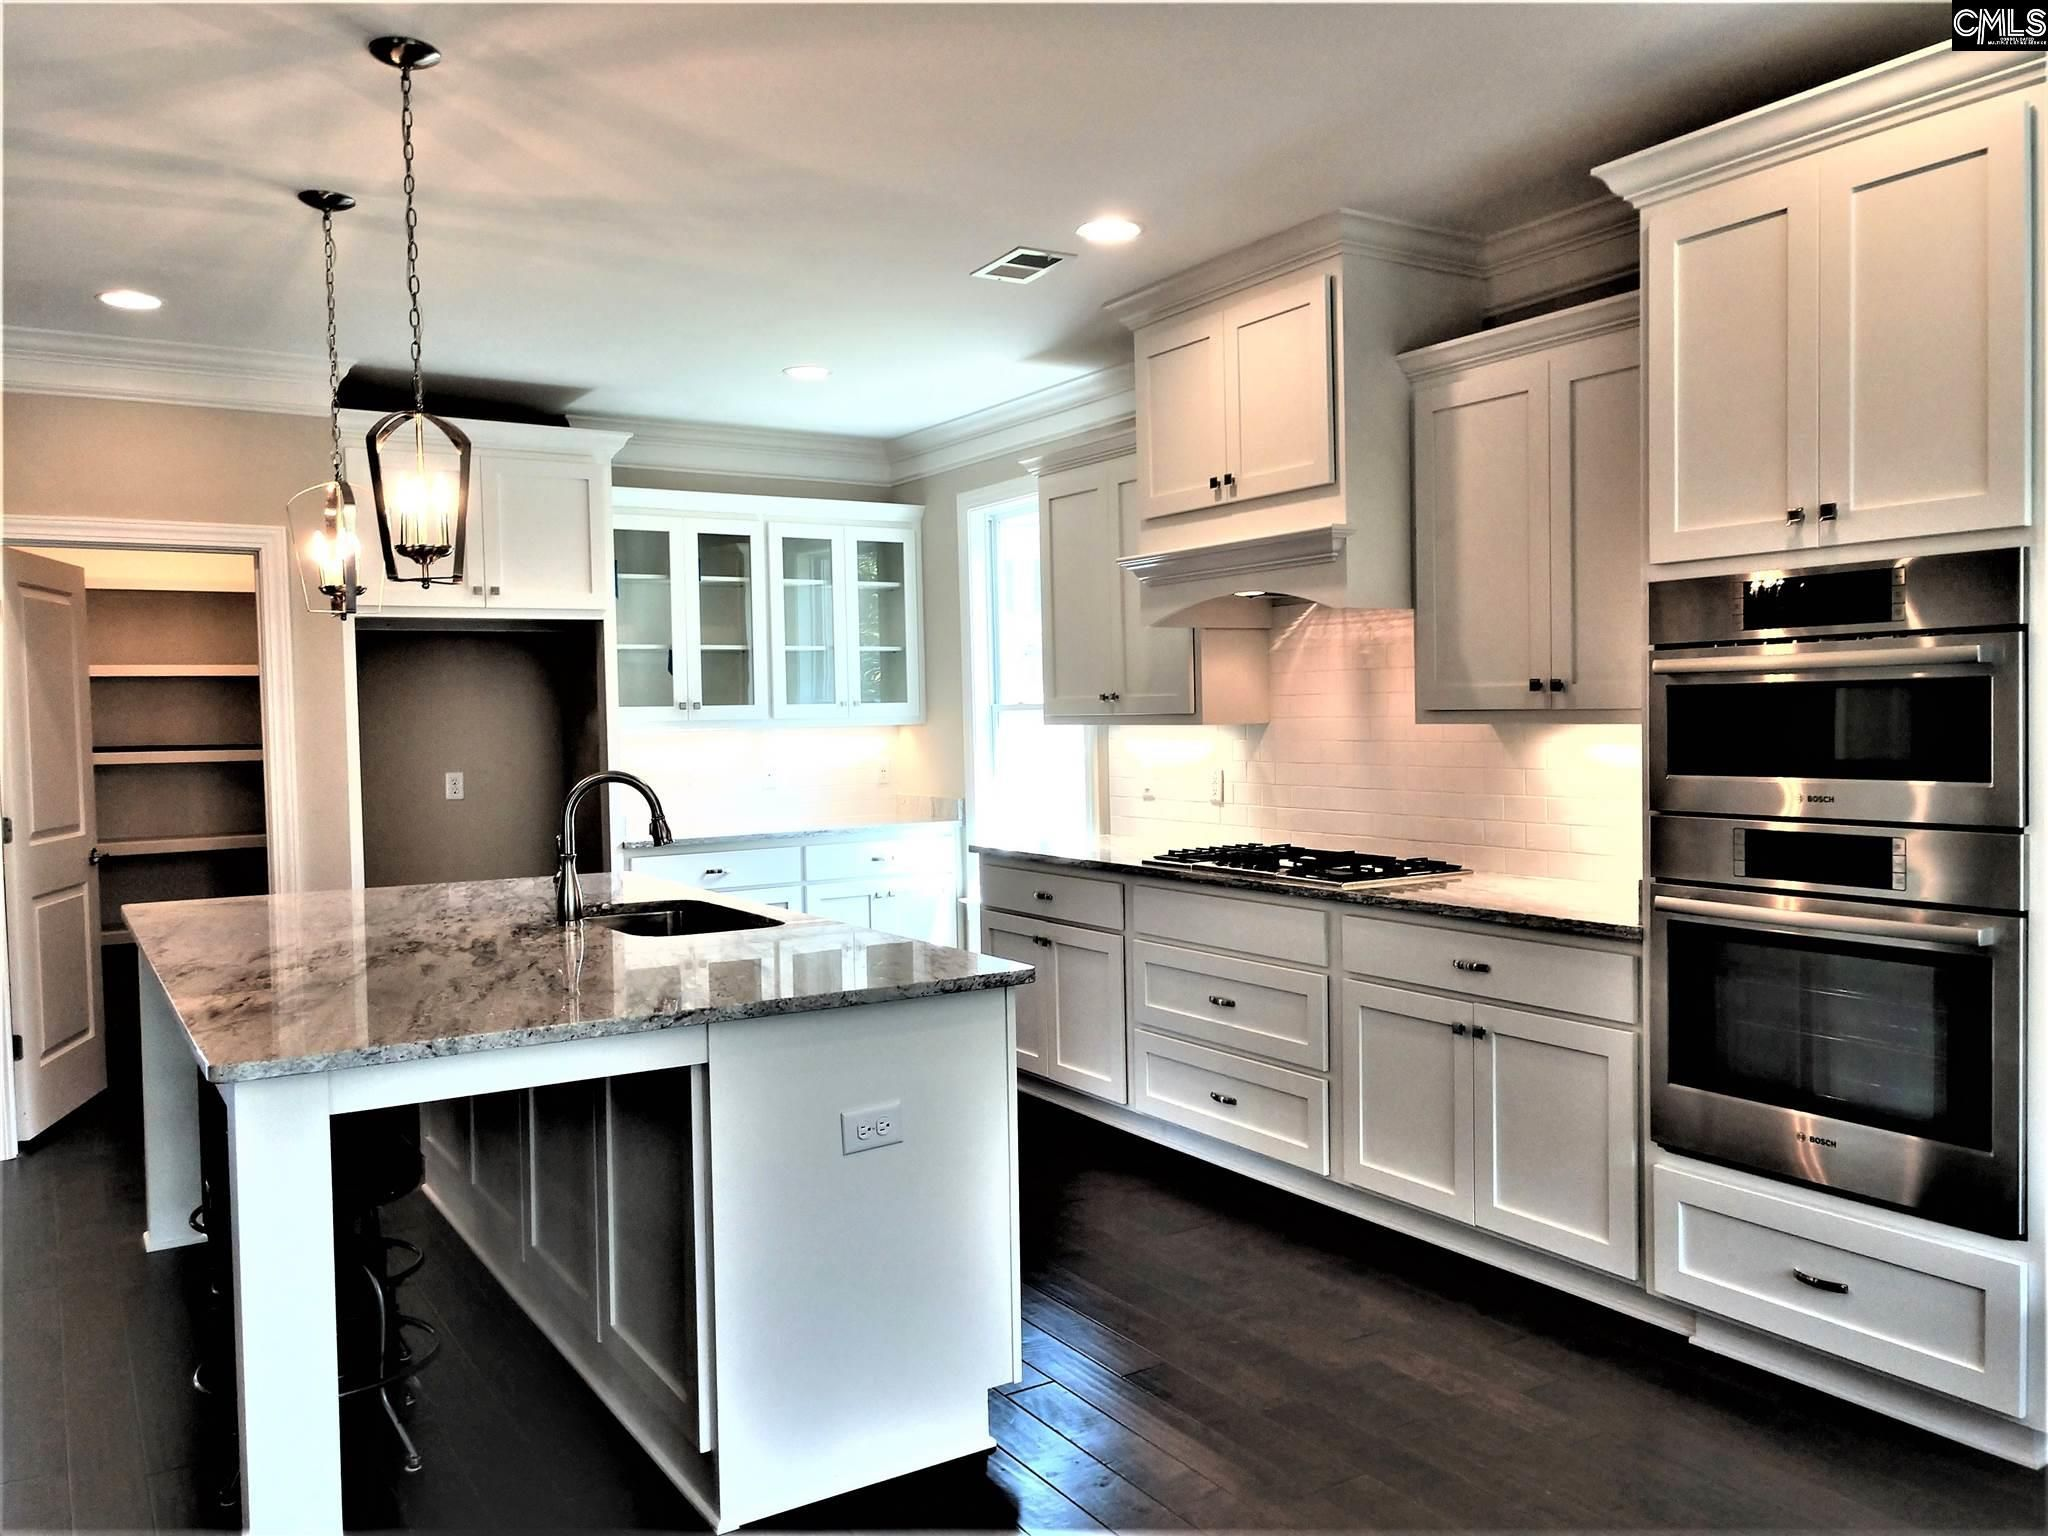 Abhe gourmet custom kitchen featuring built in